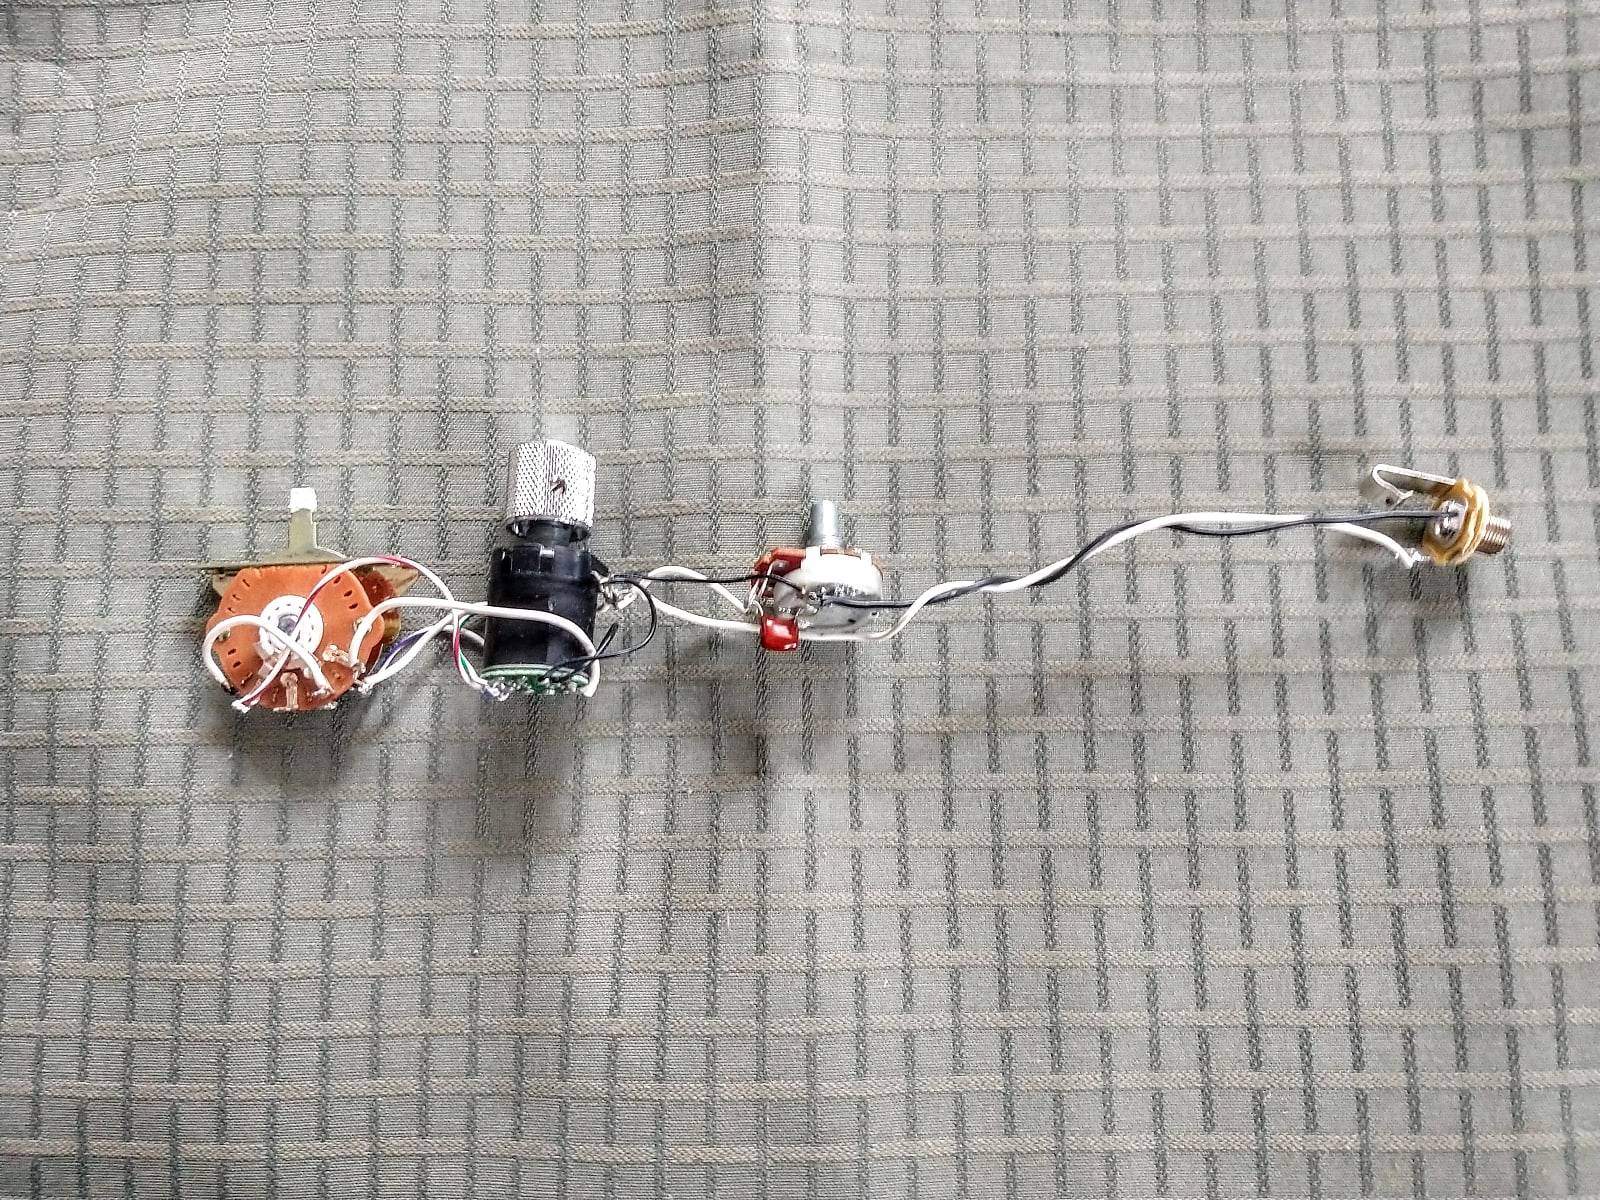 Fender American Deluxe Telecaster S1 Wiring Harness 2010 on fender usa stratocaster deluxe hss wiring, fender twisted tele wiring, fender telecaster wiring diagram for guitar,